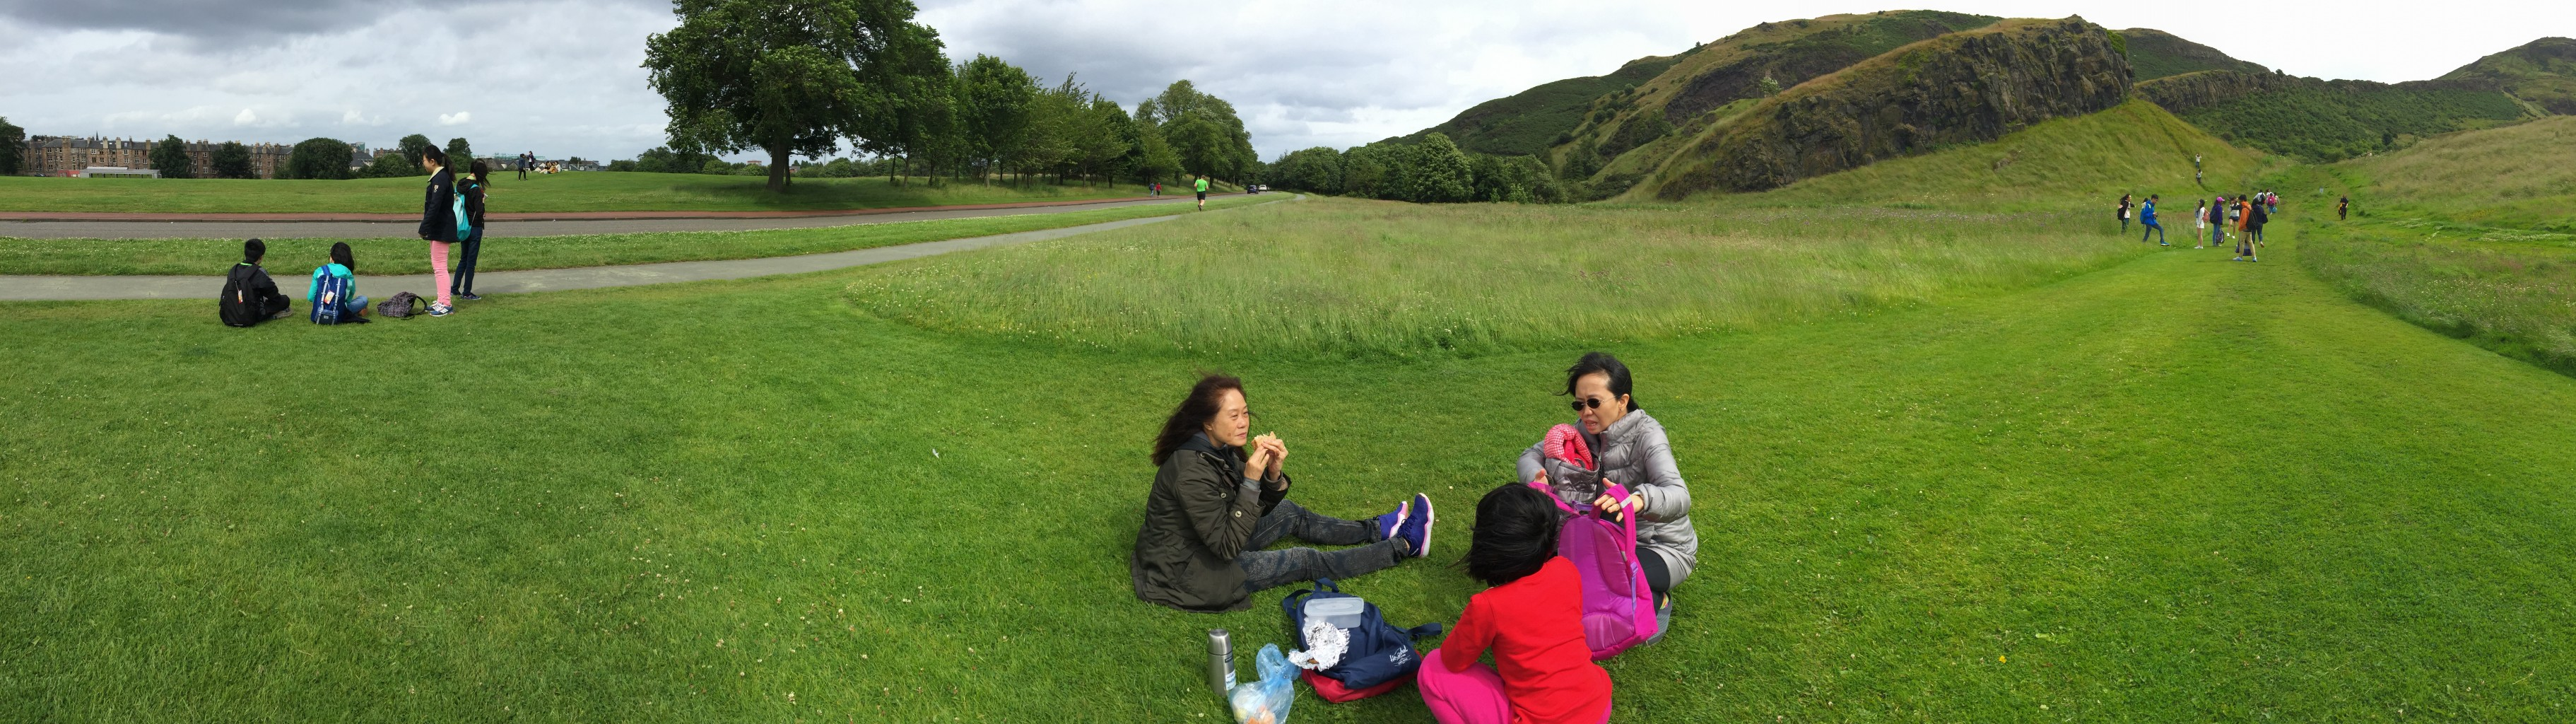 Our Hong Kong group enjoyed a picnic at the foot of Arthur's Seat after a hike around Saint Anthony's Chapel and Saint Margaret's Loch